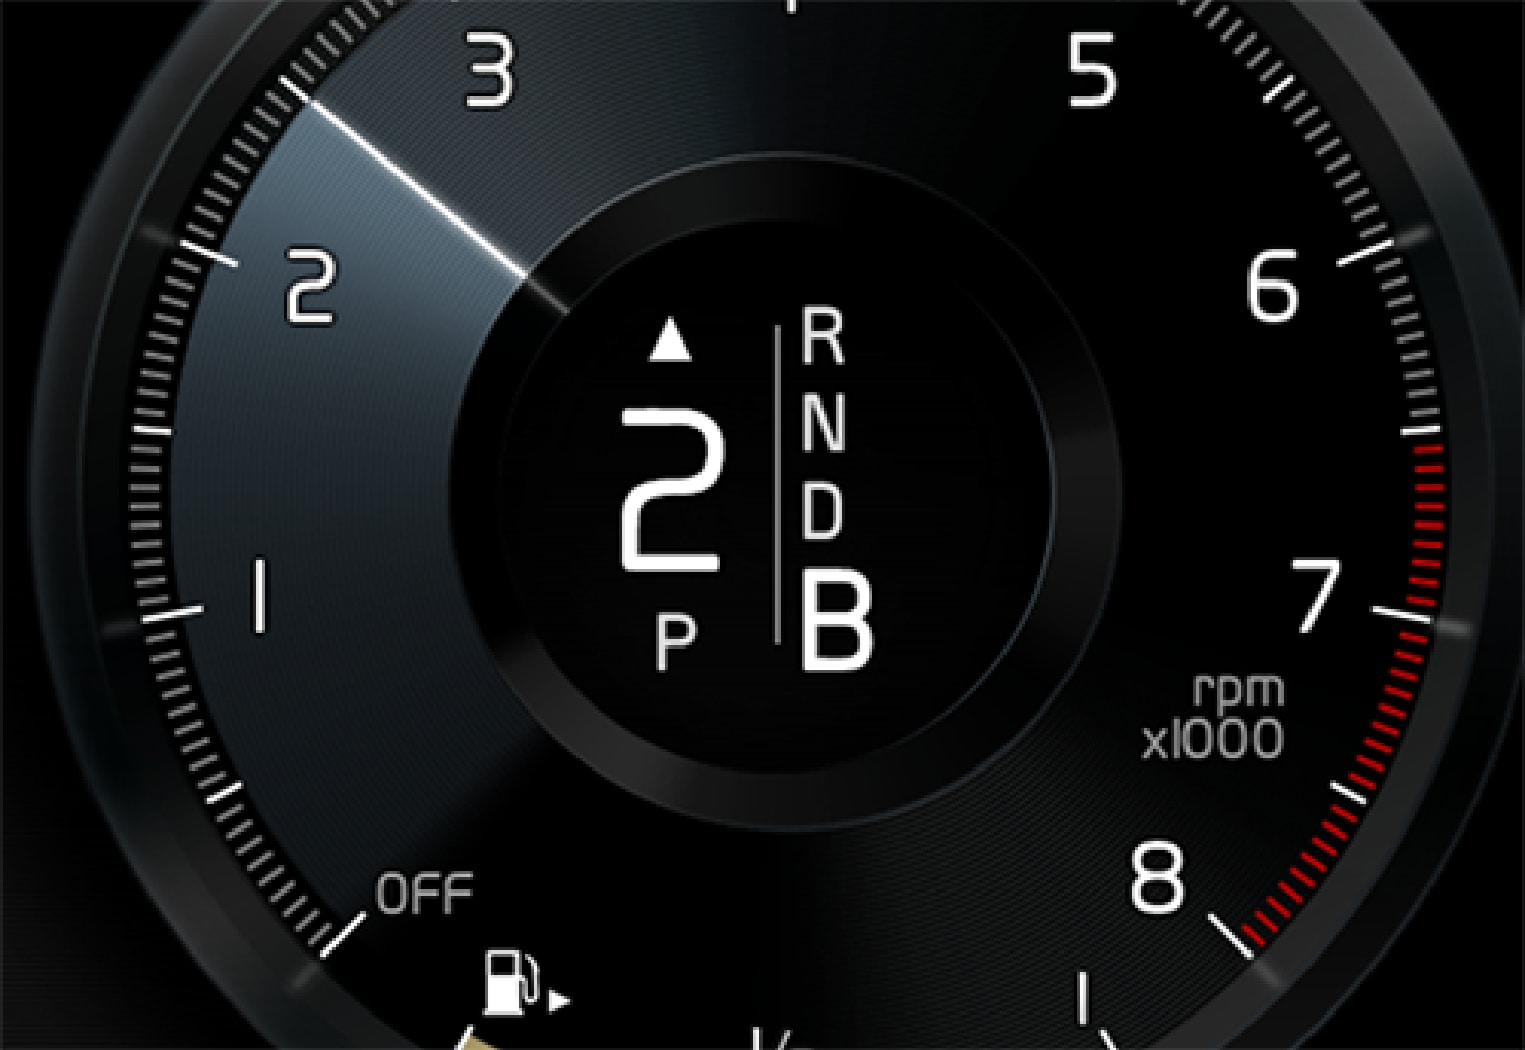 P5-1519-XC90 Hybrid gear shift indicator in DIM